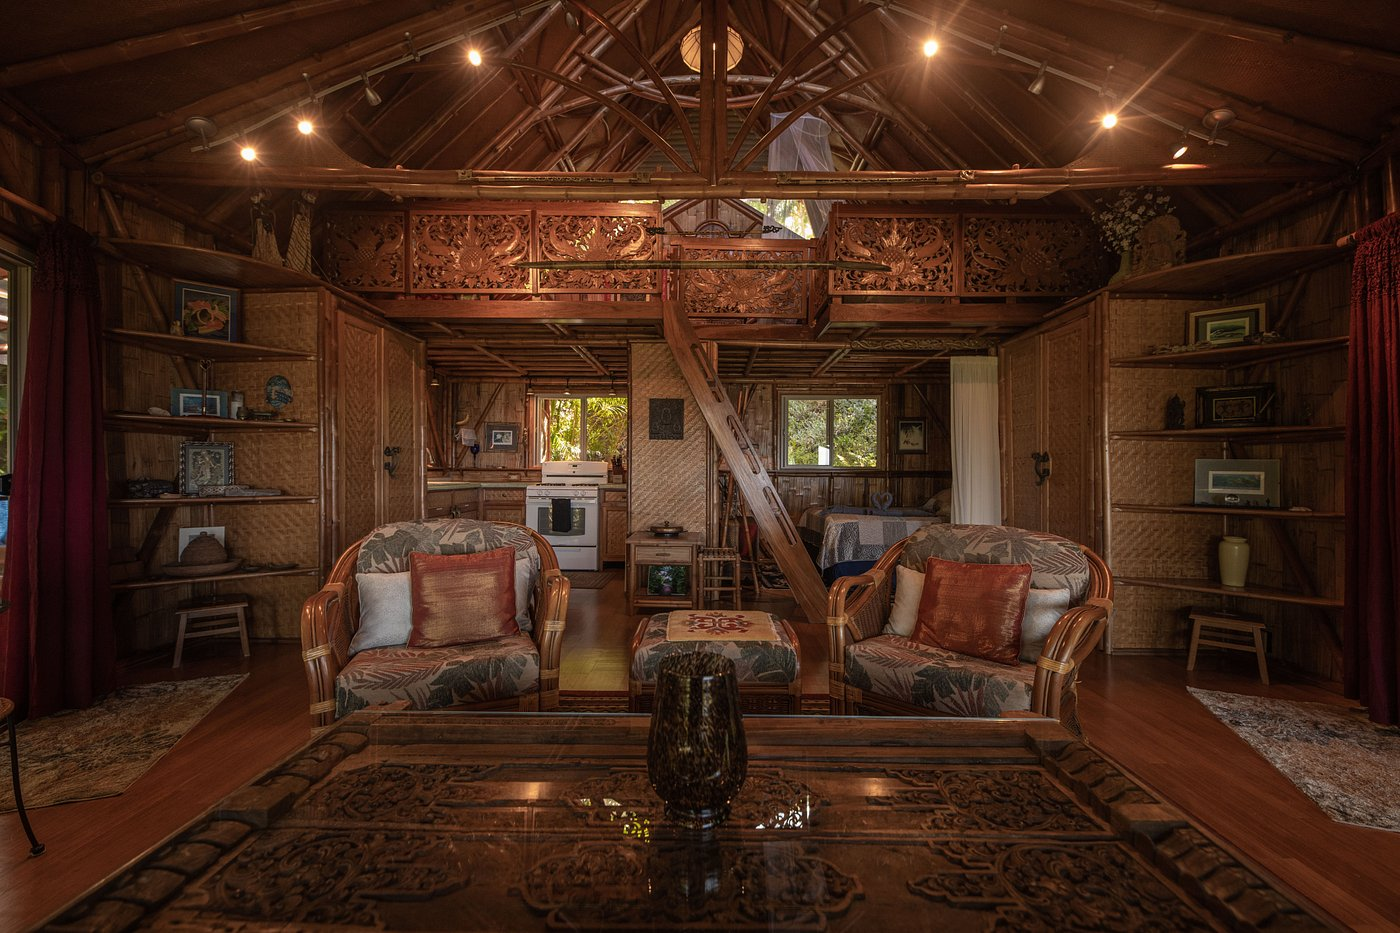 Intimate wooden interior of one of the  Airbnbs Hawaii